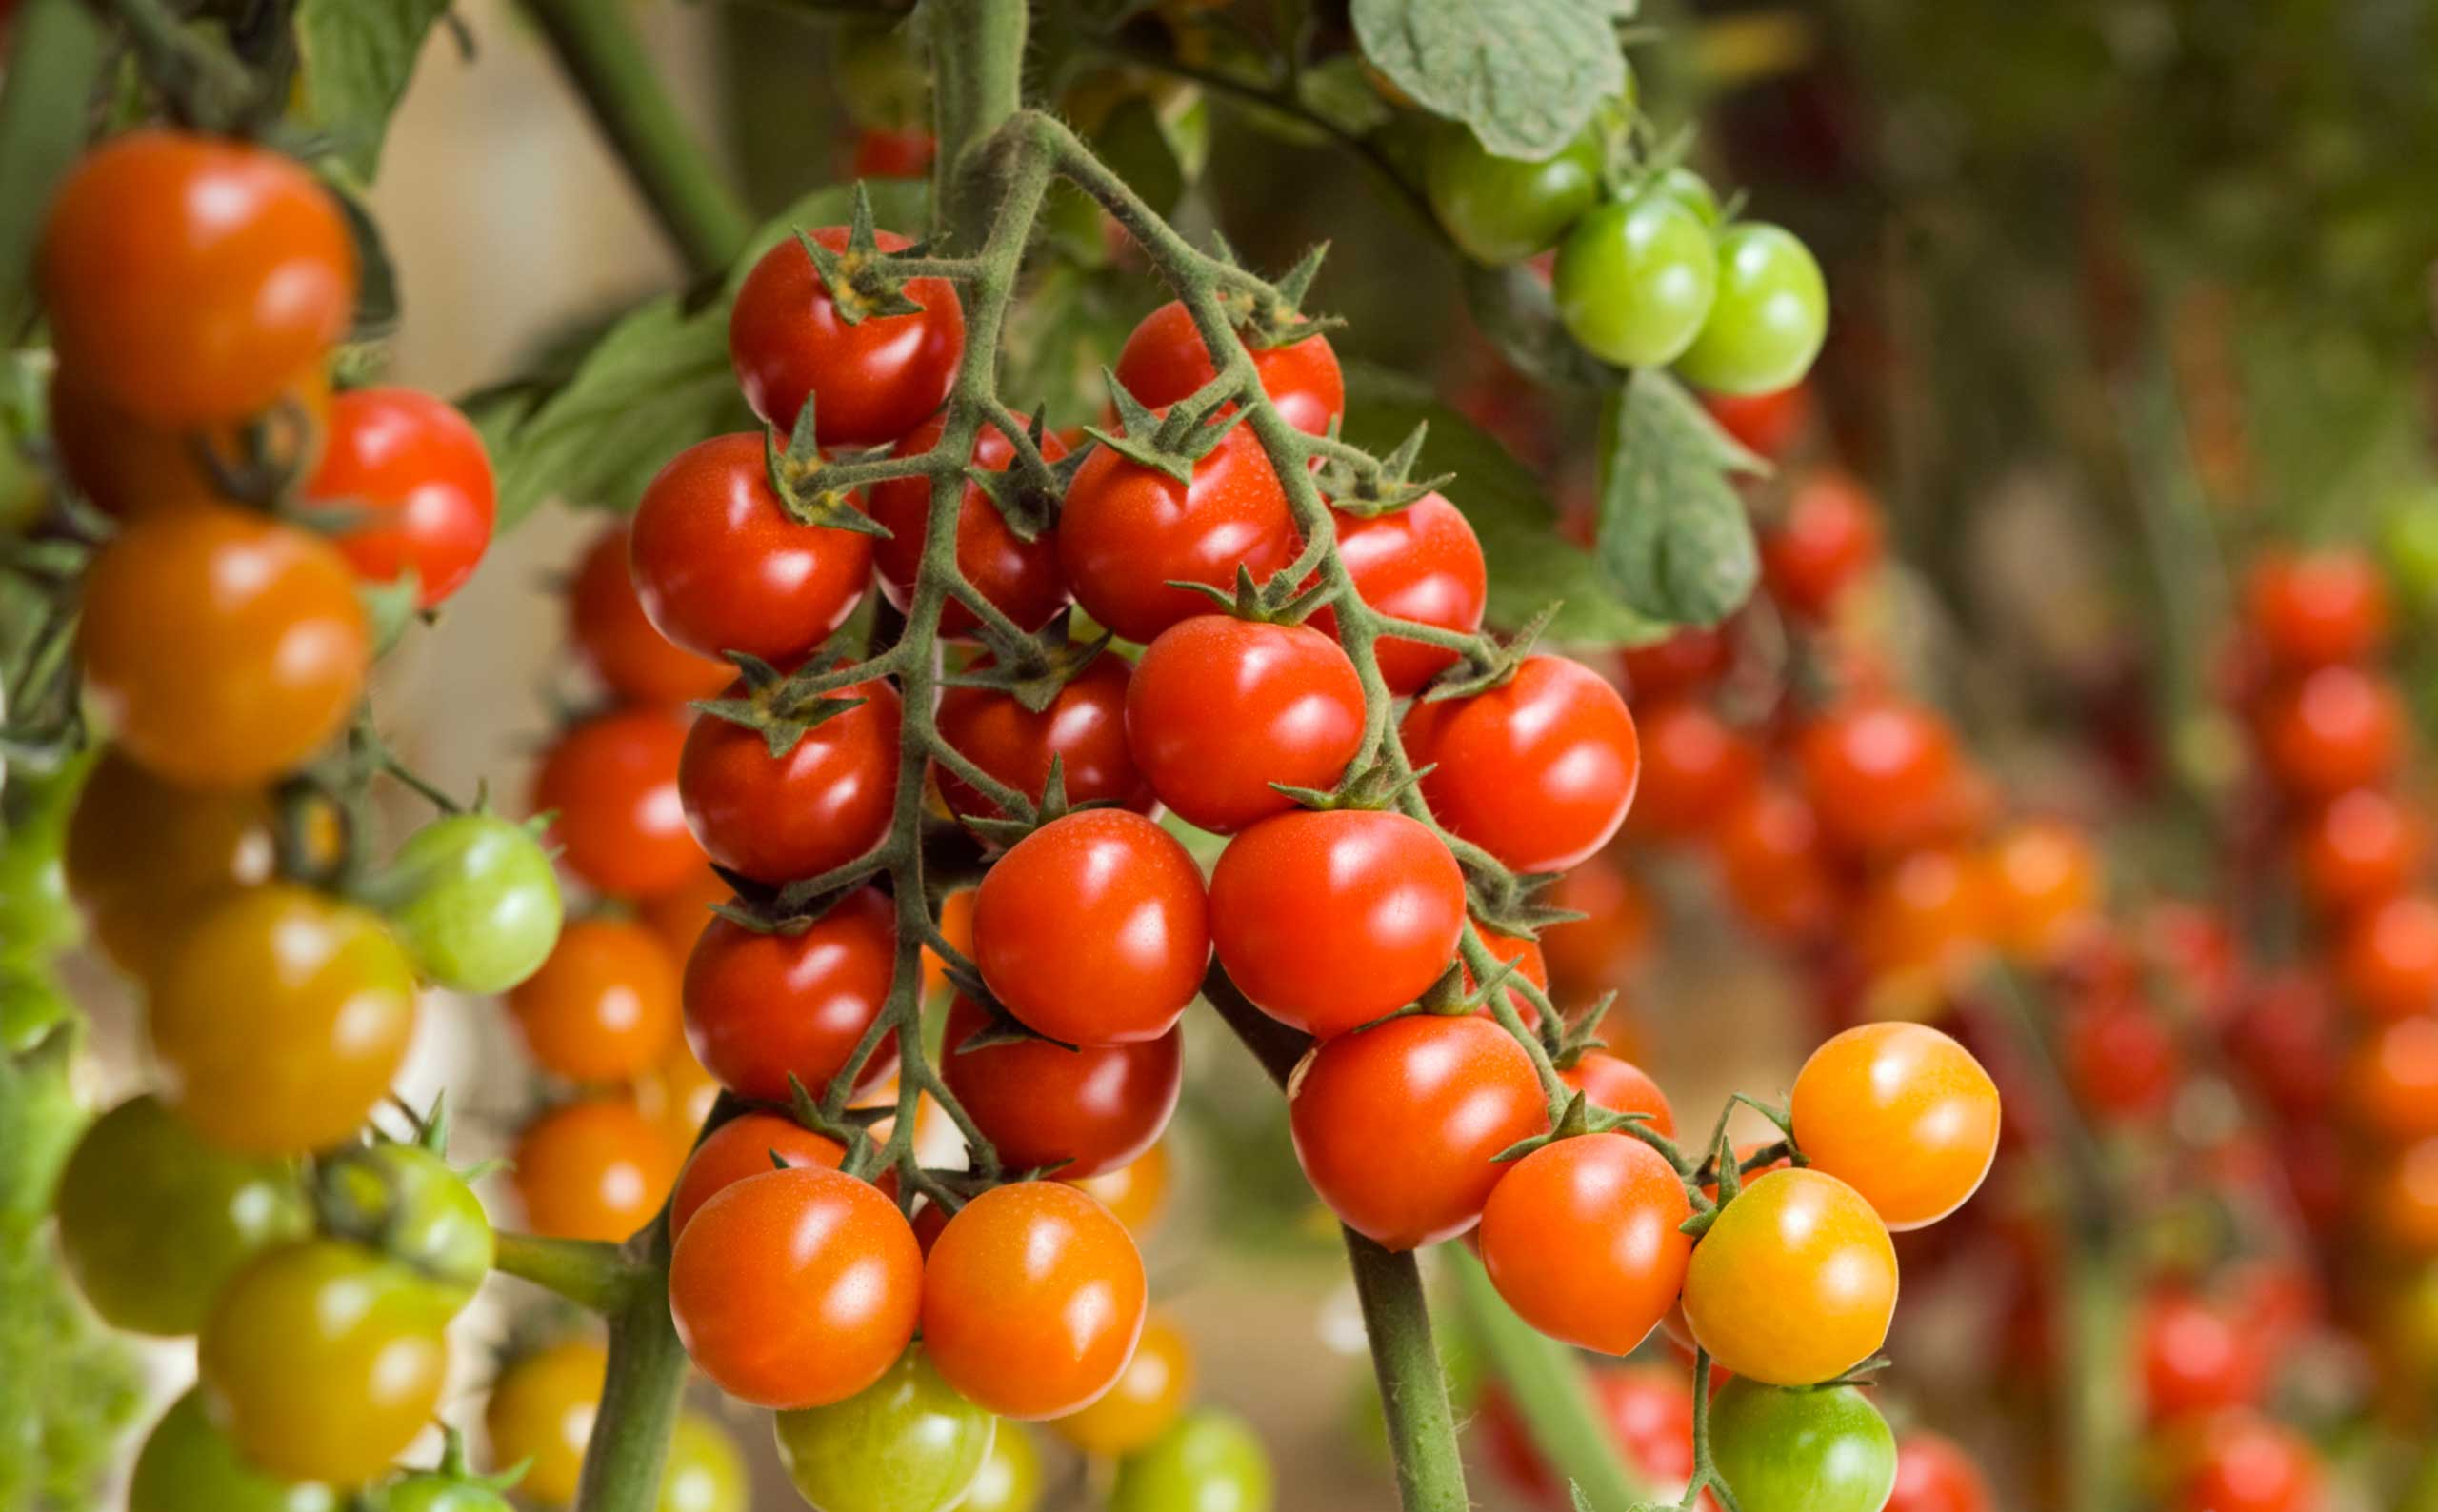 Farming Cherry tomatoes